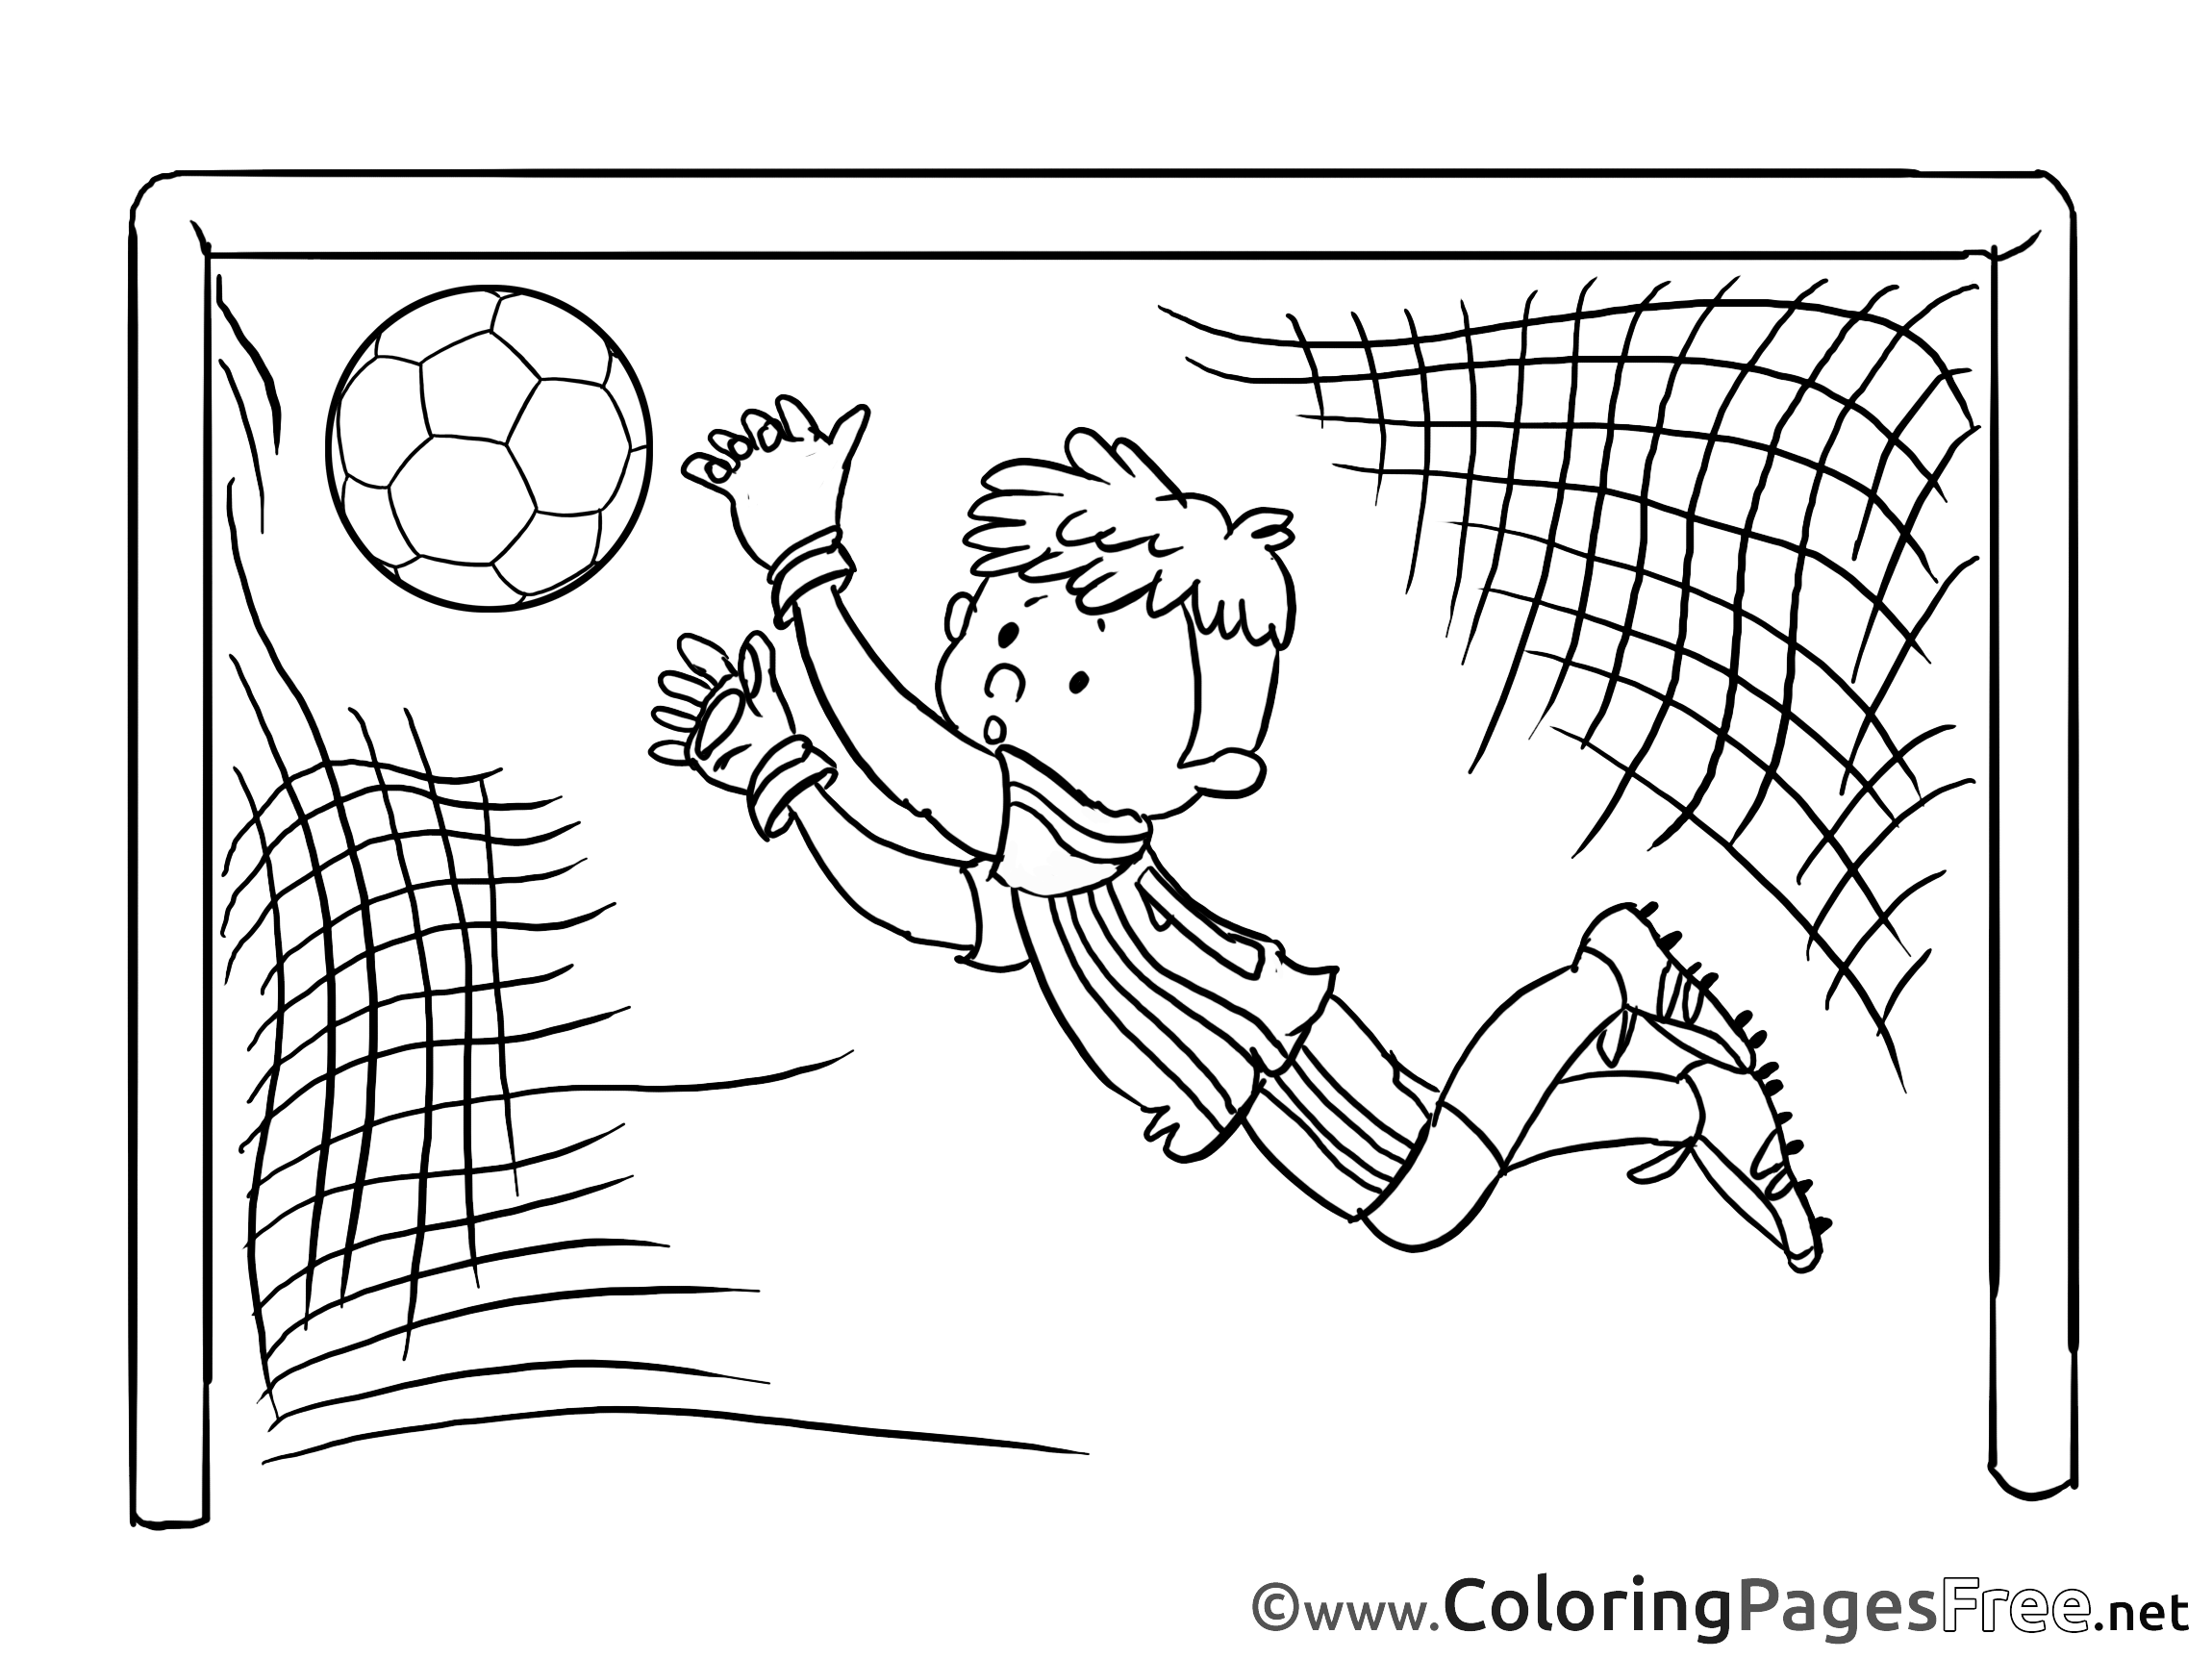 2300x1725 Goal Goalkeeper Soccer Free Coloring Pages